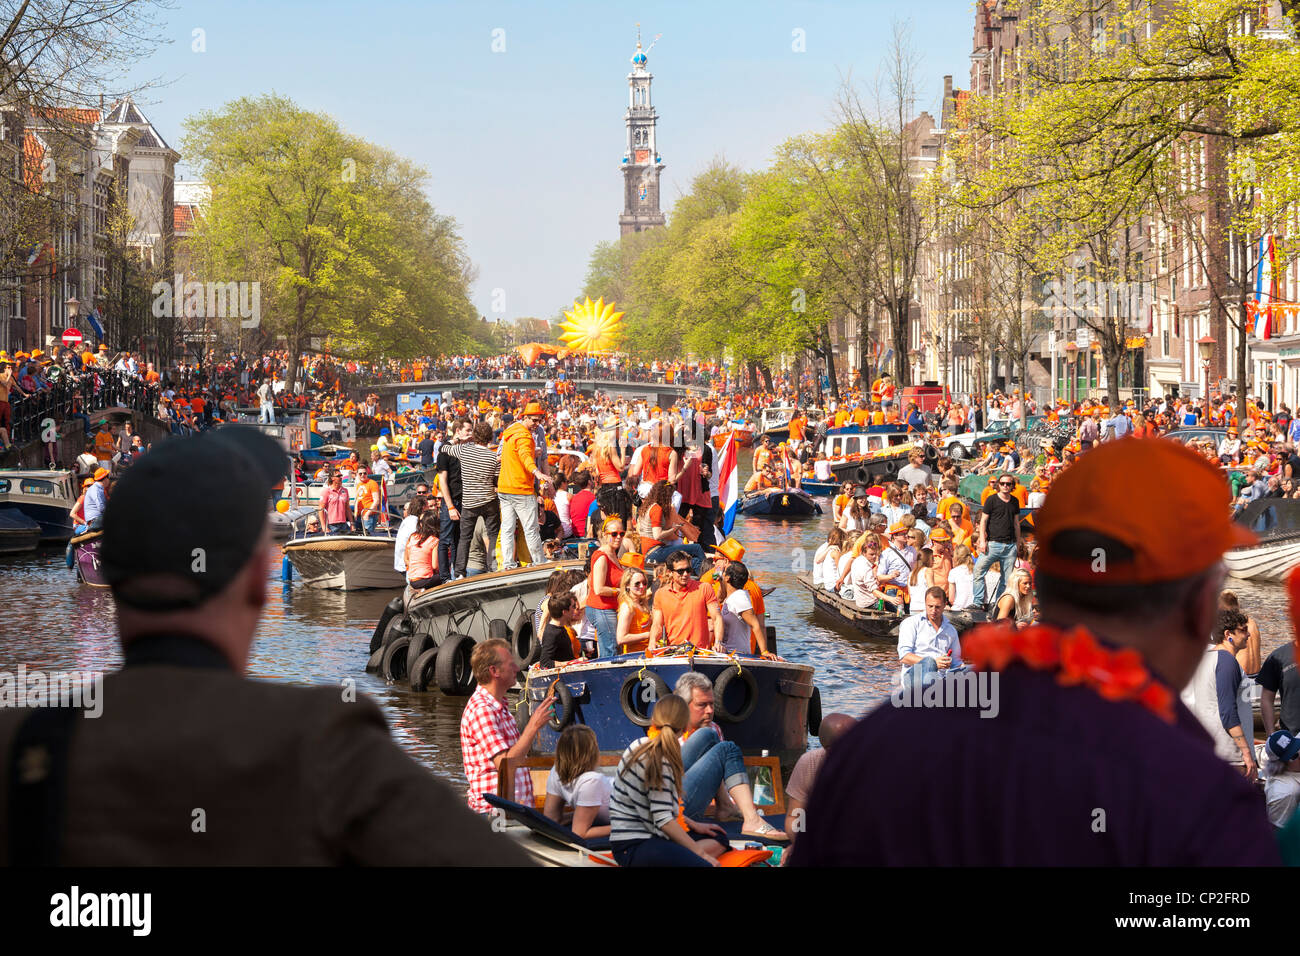 https://c7.alamy.com/comp/CP2FRD/kingsday-kings-day-kings-day-in-amsterdam-canal-parade-in-the-prinsengracht-CP2FRD.jpg